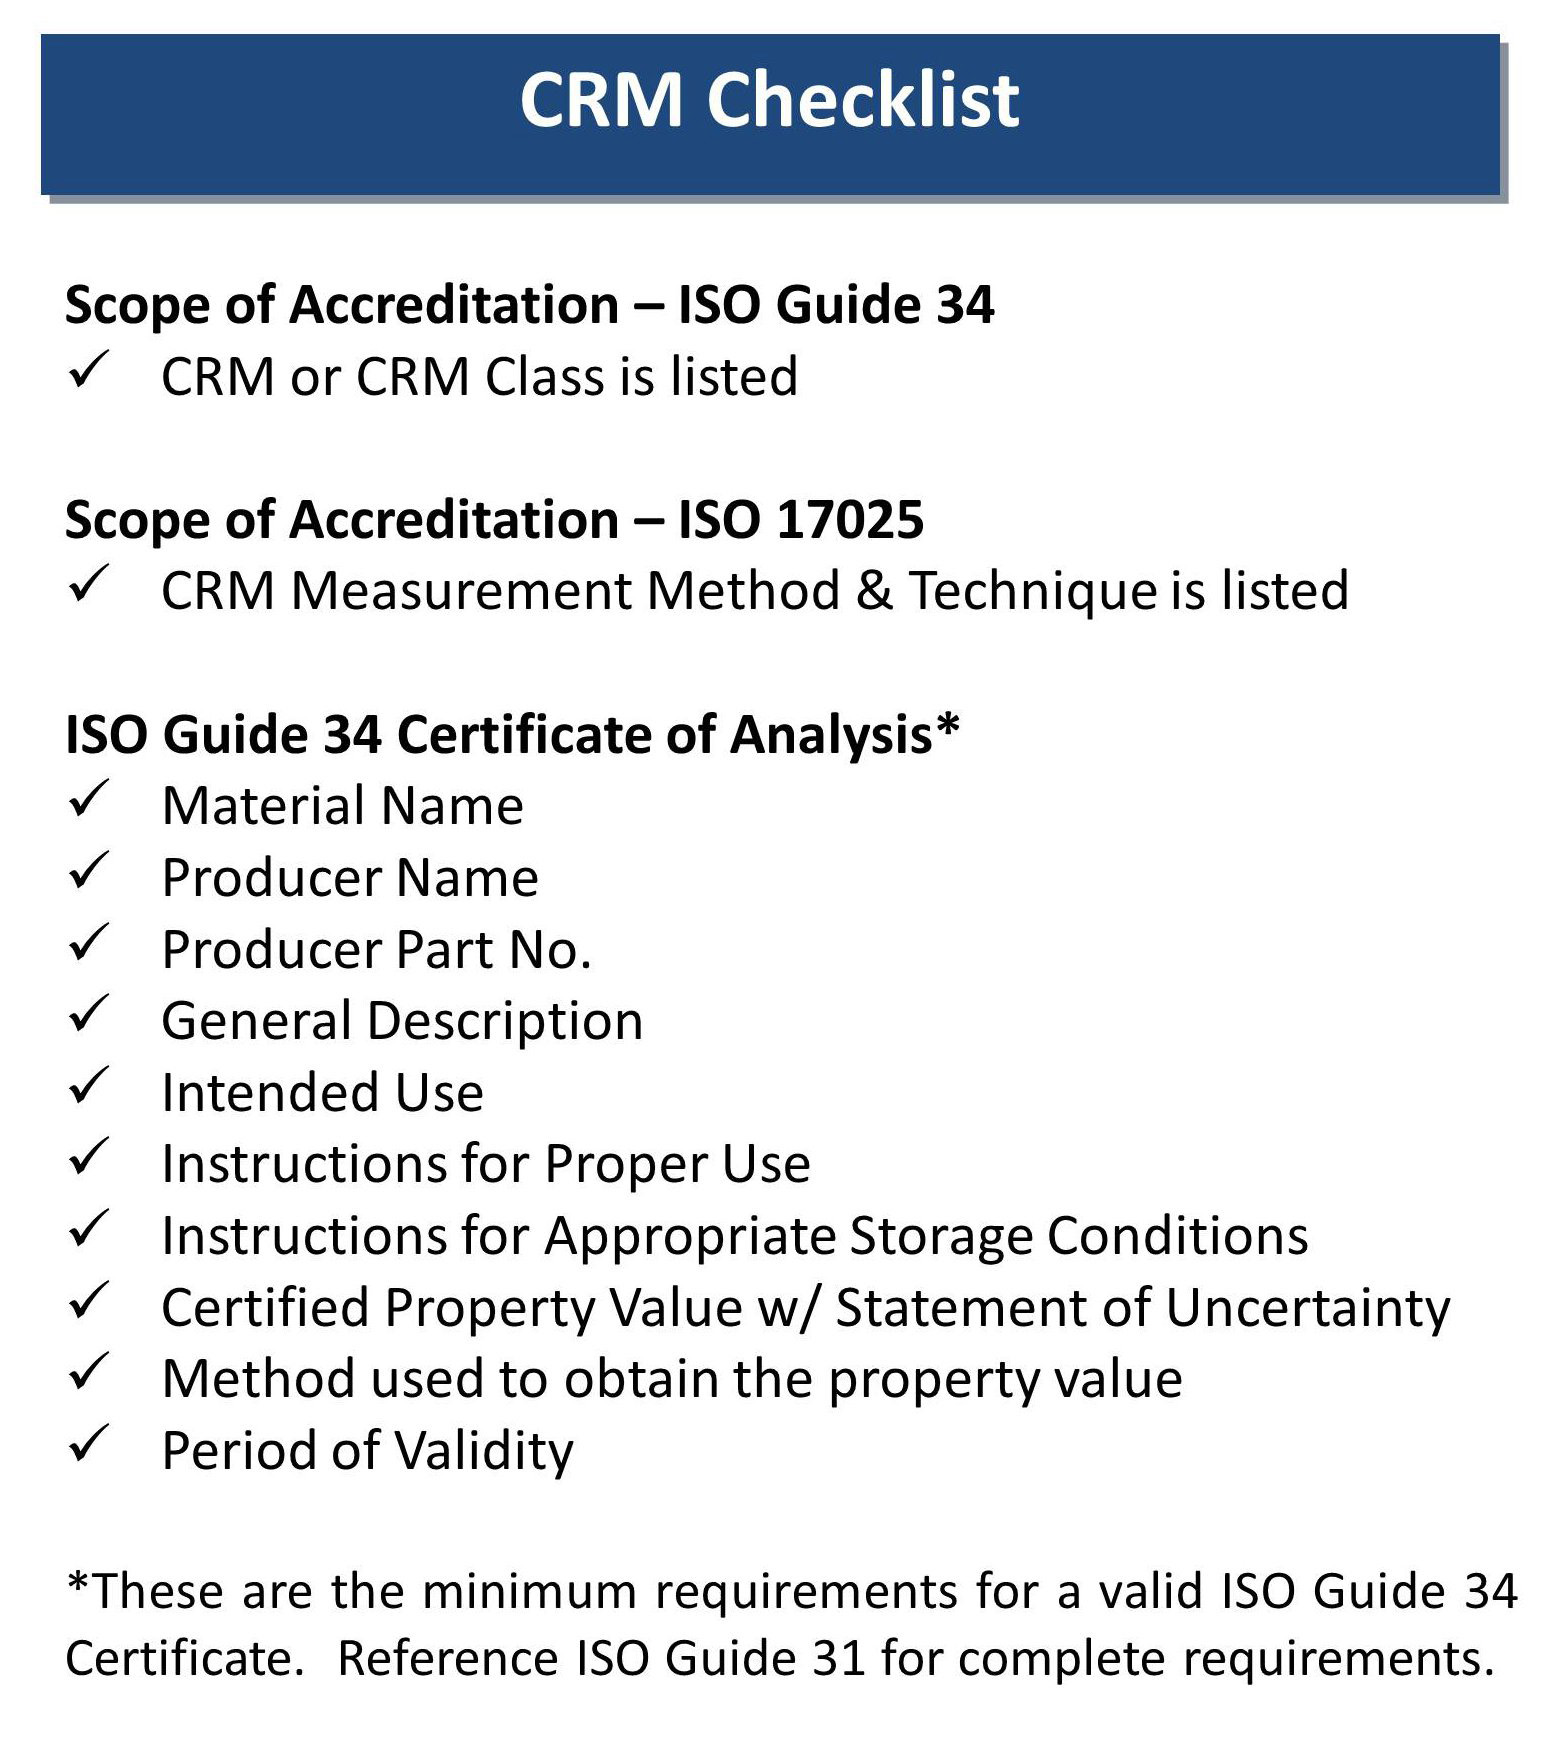 Systems Requirements Checklist